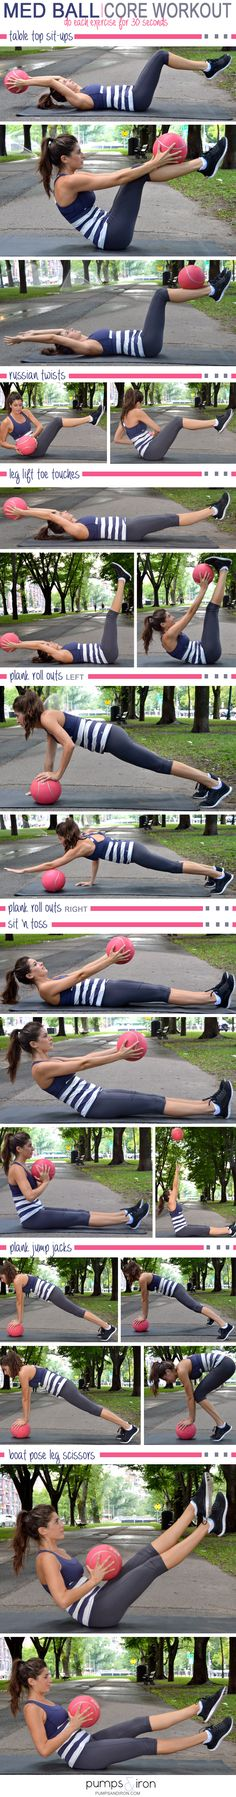 medicine ball workout - post surgery